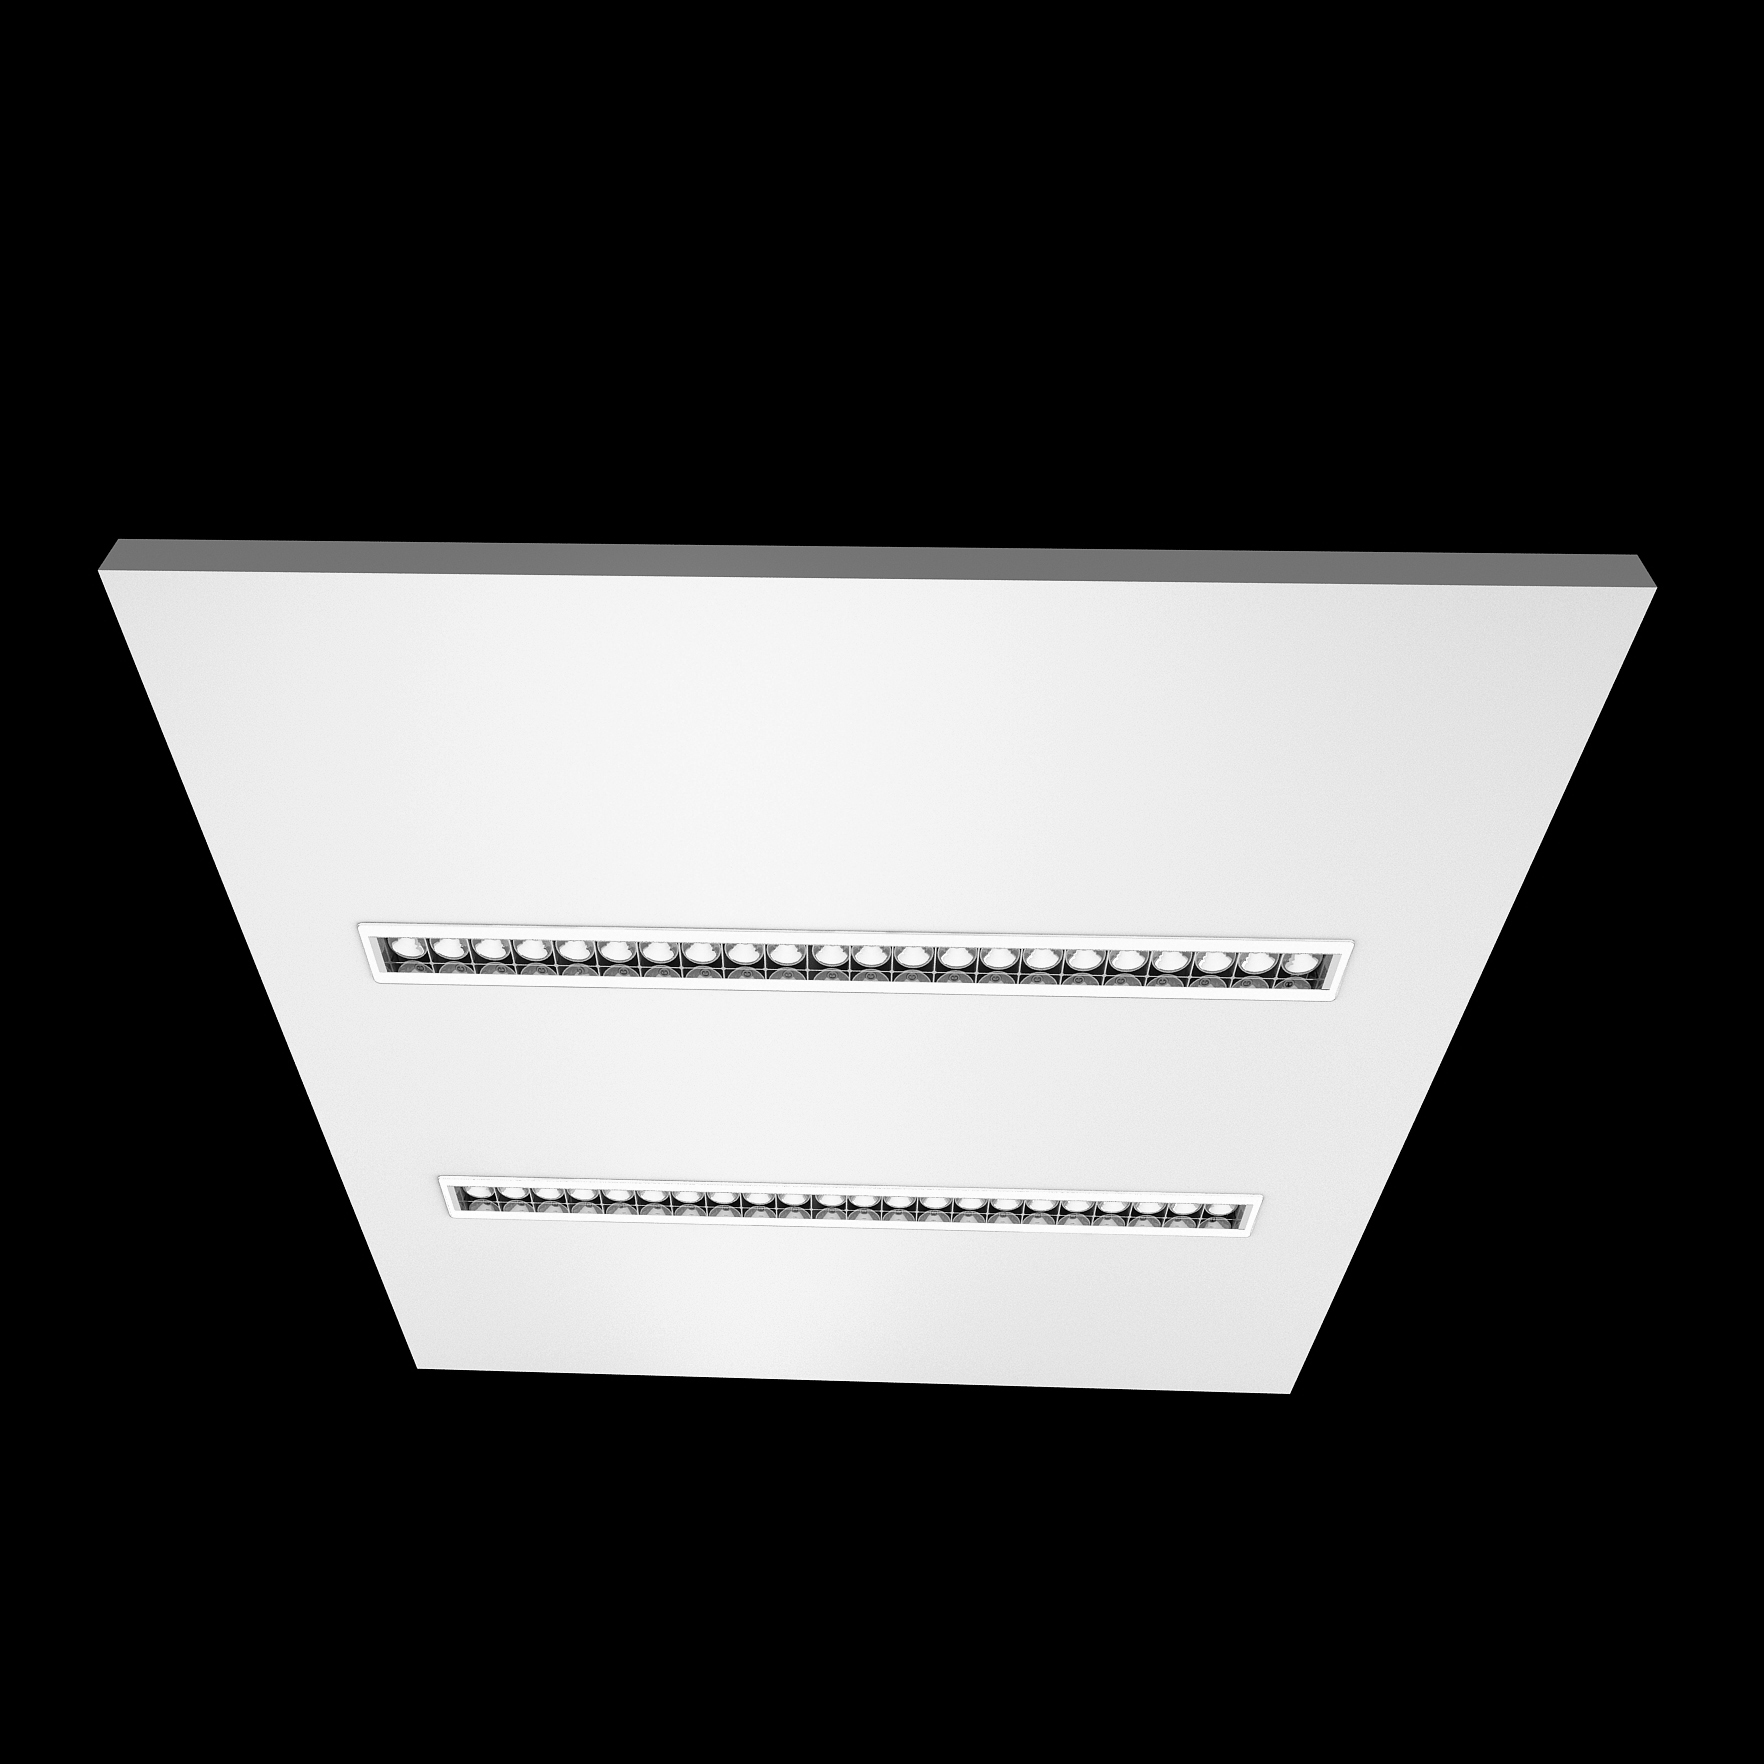 Cheap LED Panel Light 4000K led <strong>flat</strong> panel light fixture